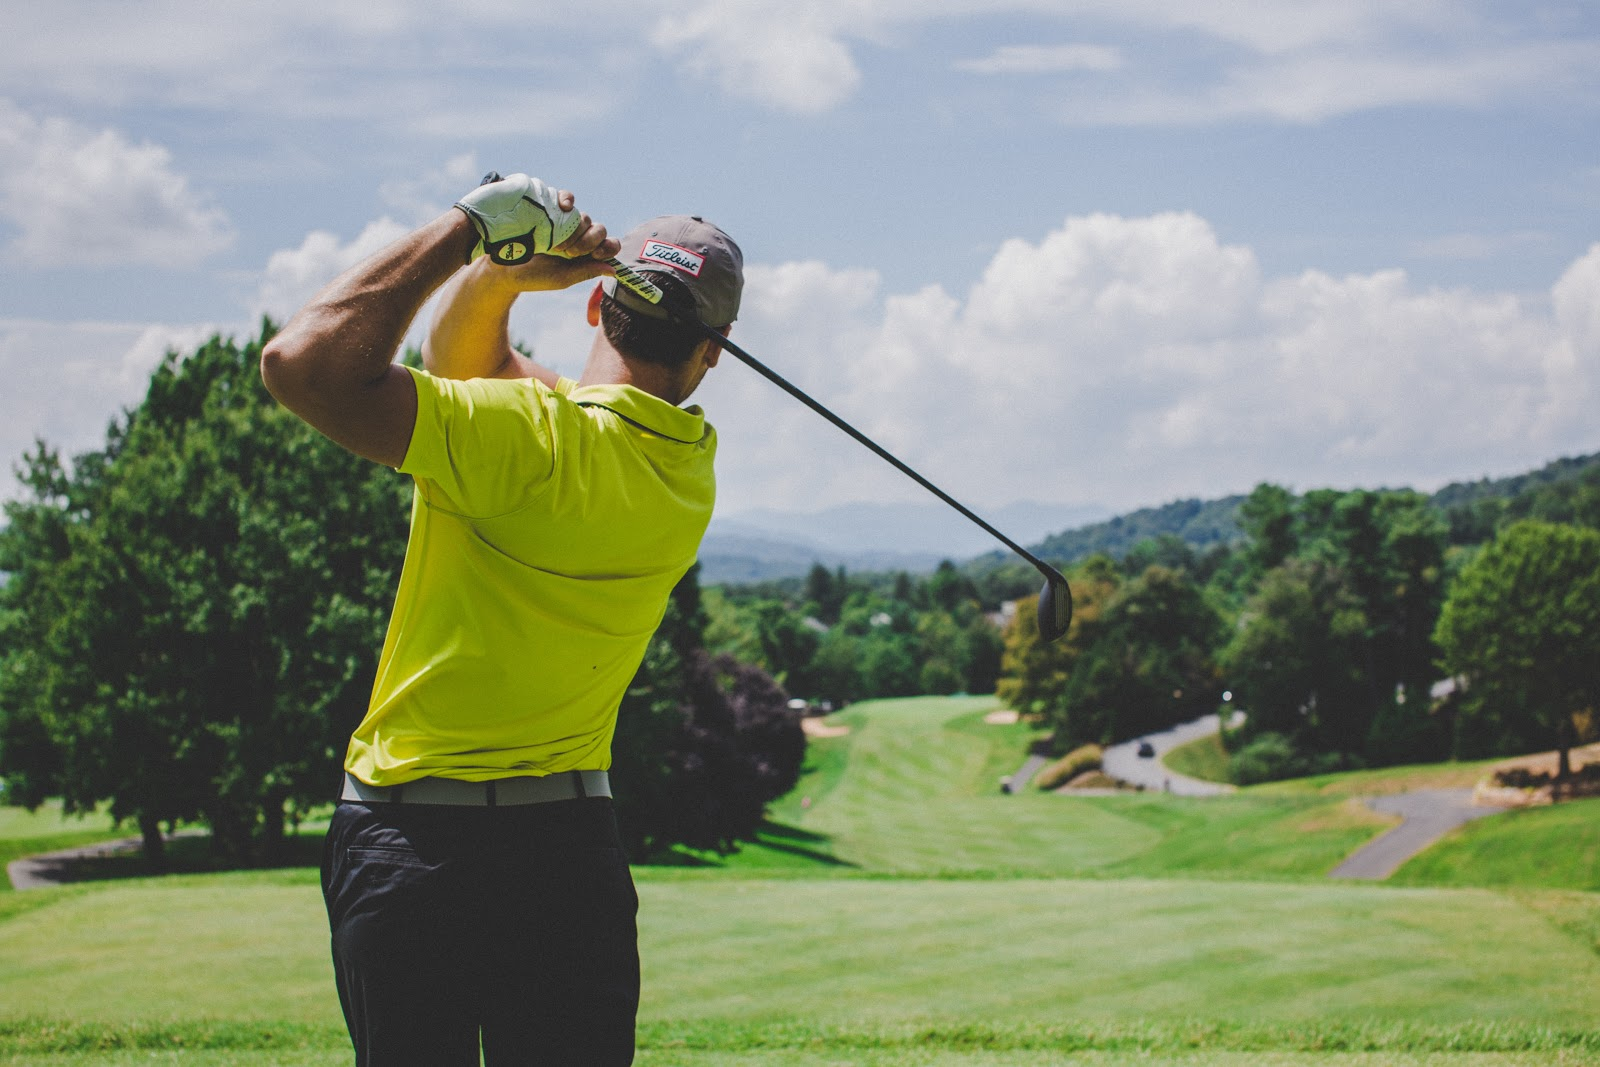 a back shot of a person golfing